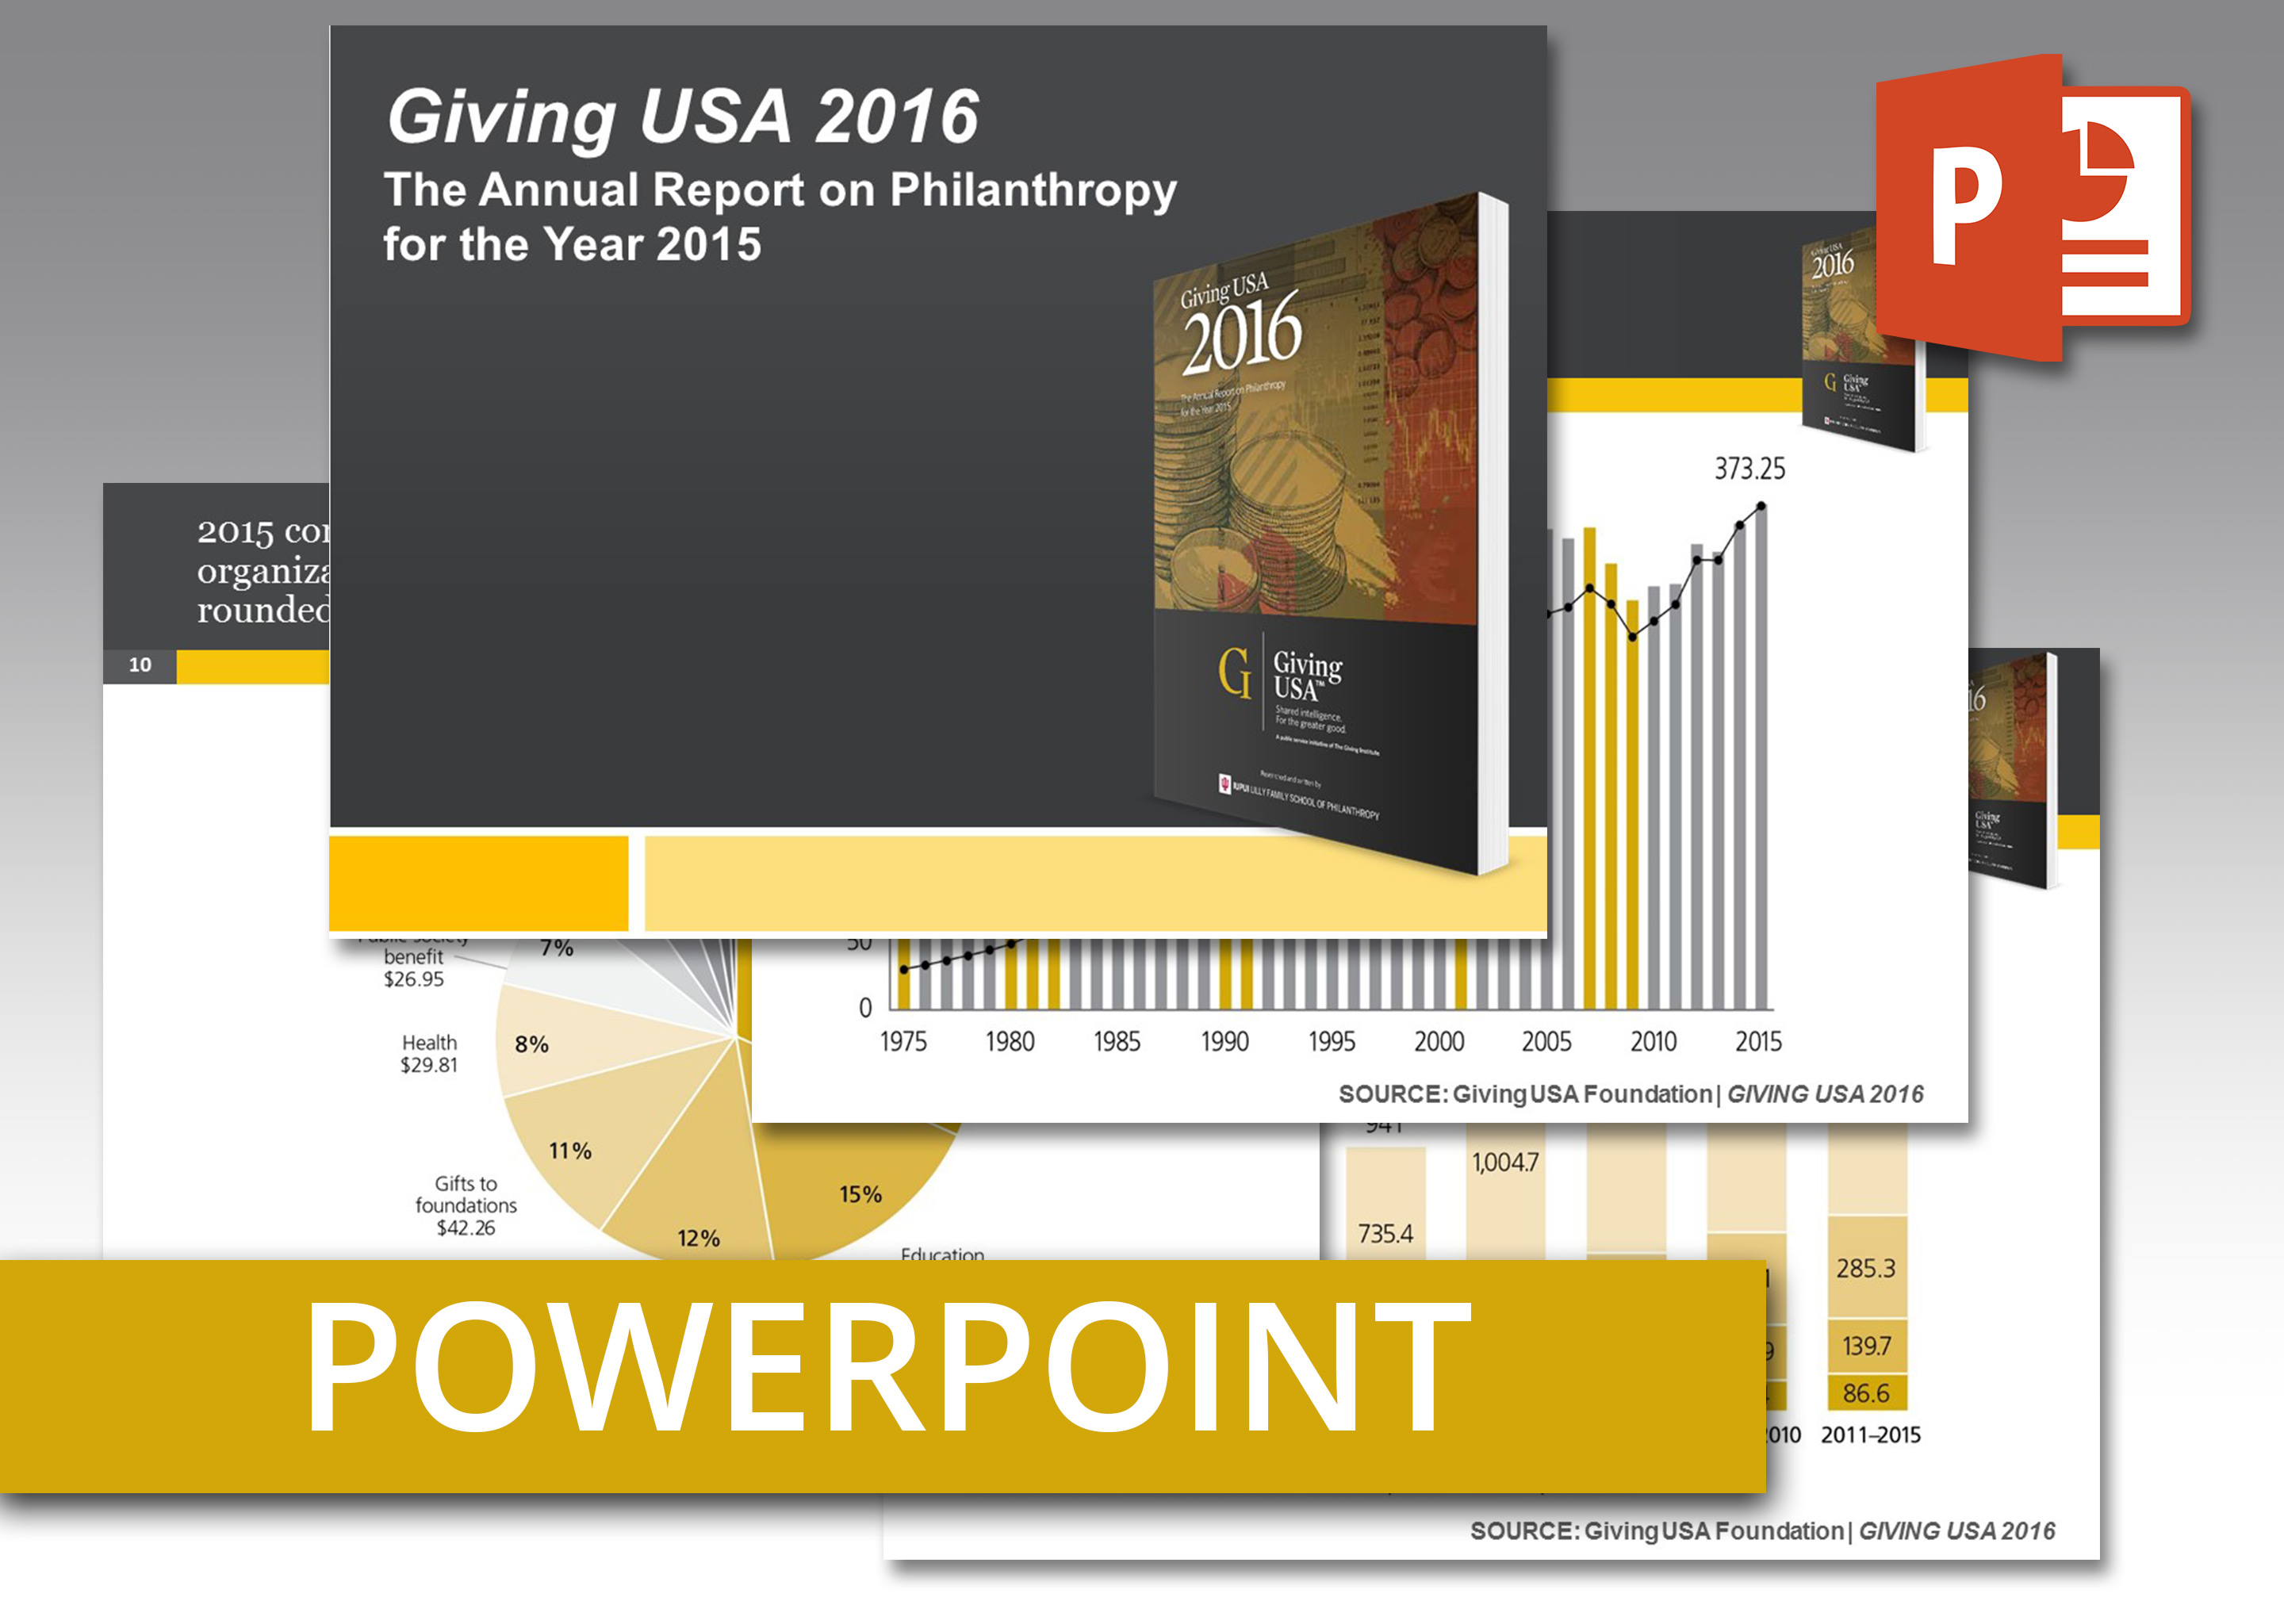 Coolmathgamesus  Fascinating Giving Usa  Powerpoint An Easytouse Presentation Of Report  With Exciting Giving Usa  Powerpoint An Easytouse Presentation Of Report Findings Including Talking Points With Enchanting Custom Powerpoint Presentations Also Free Design Powerpoint In Addition Developing A Powerpoint Presentation And Geography Powerpoints As Well As Chemical Bonds Powerpoint Additionally Powerpoint Easy From Givingusaorg With Coolmathgamesus  Exciting Giving Usa  Powerpoint An Easytouse Presentation Of Report  With Enchanting Giving Usa  Powerpoint An Easytouse Presentation Of Report Findings Including Talking Points And Fascinating Custom Powerpoint Presentations Also Free Design Powerpoint In Addition Developing A Powerpoint Presentation From Givingusaorg